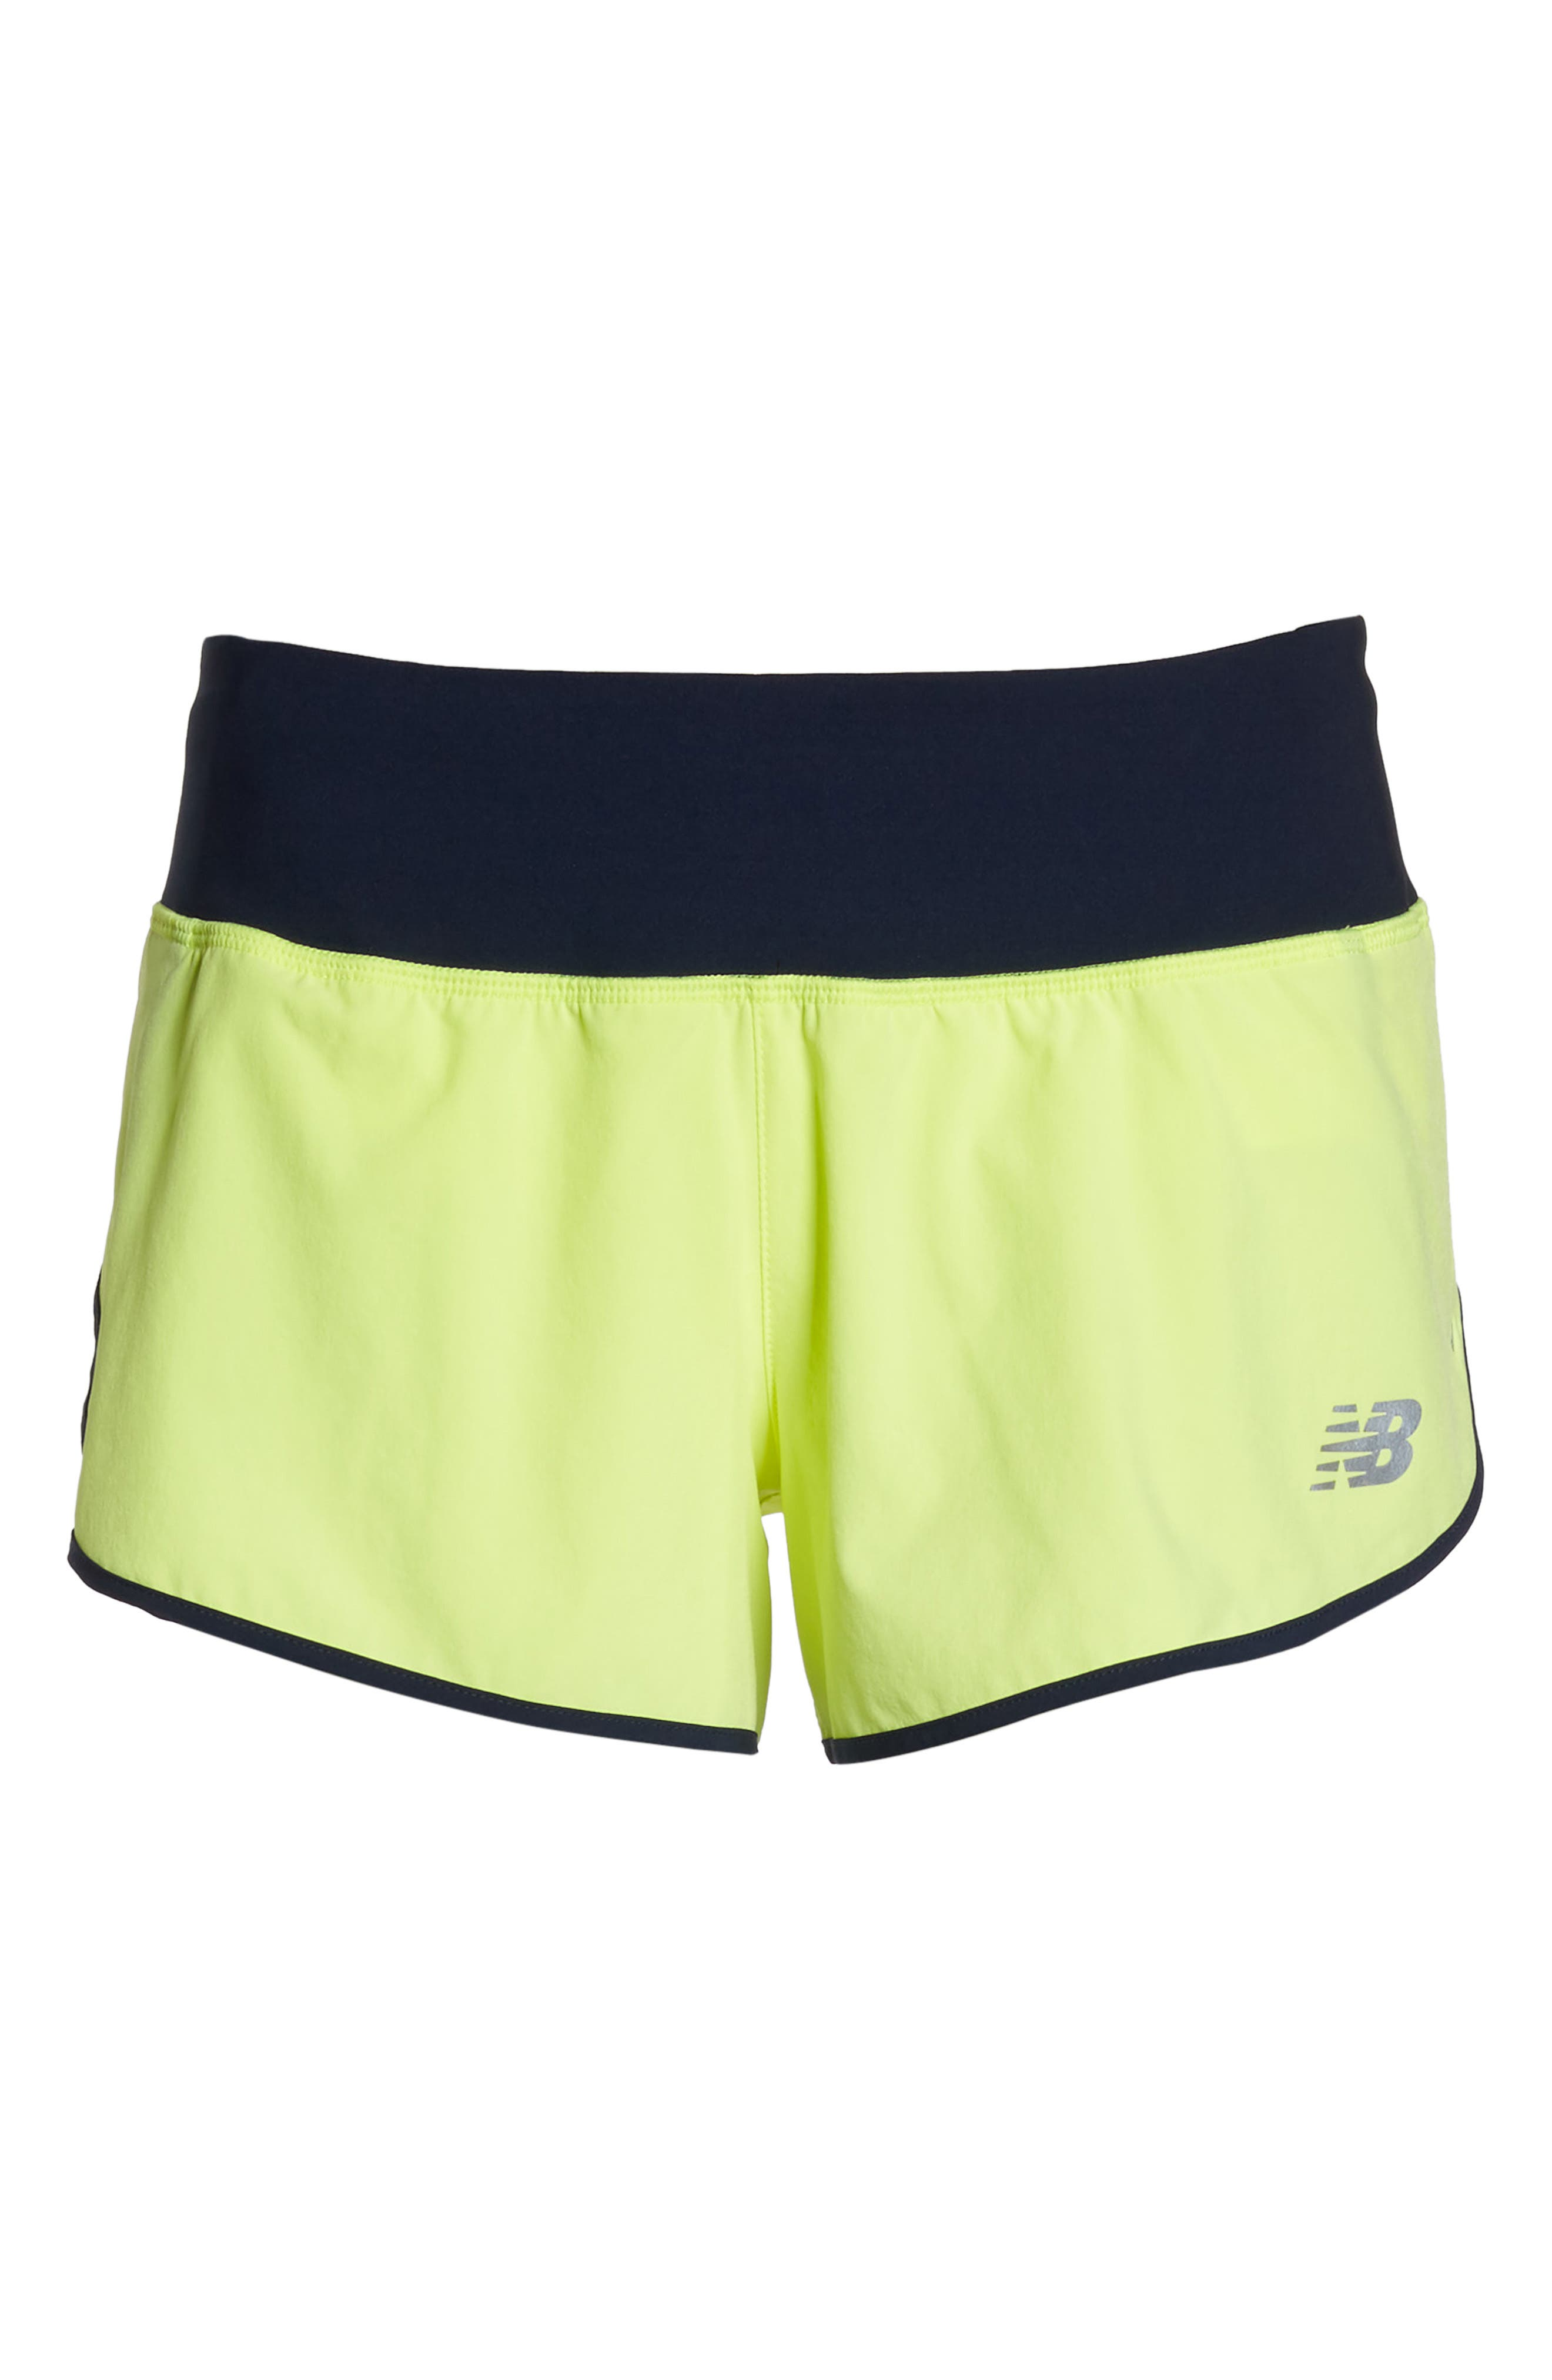 Impact 3 Shorts,                             Alternate thumbnail 7, color,                             Solar Yellow